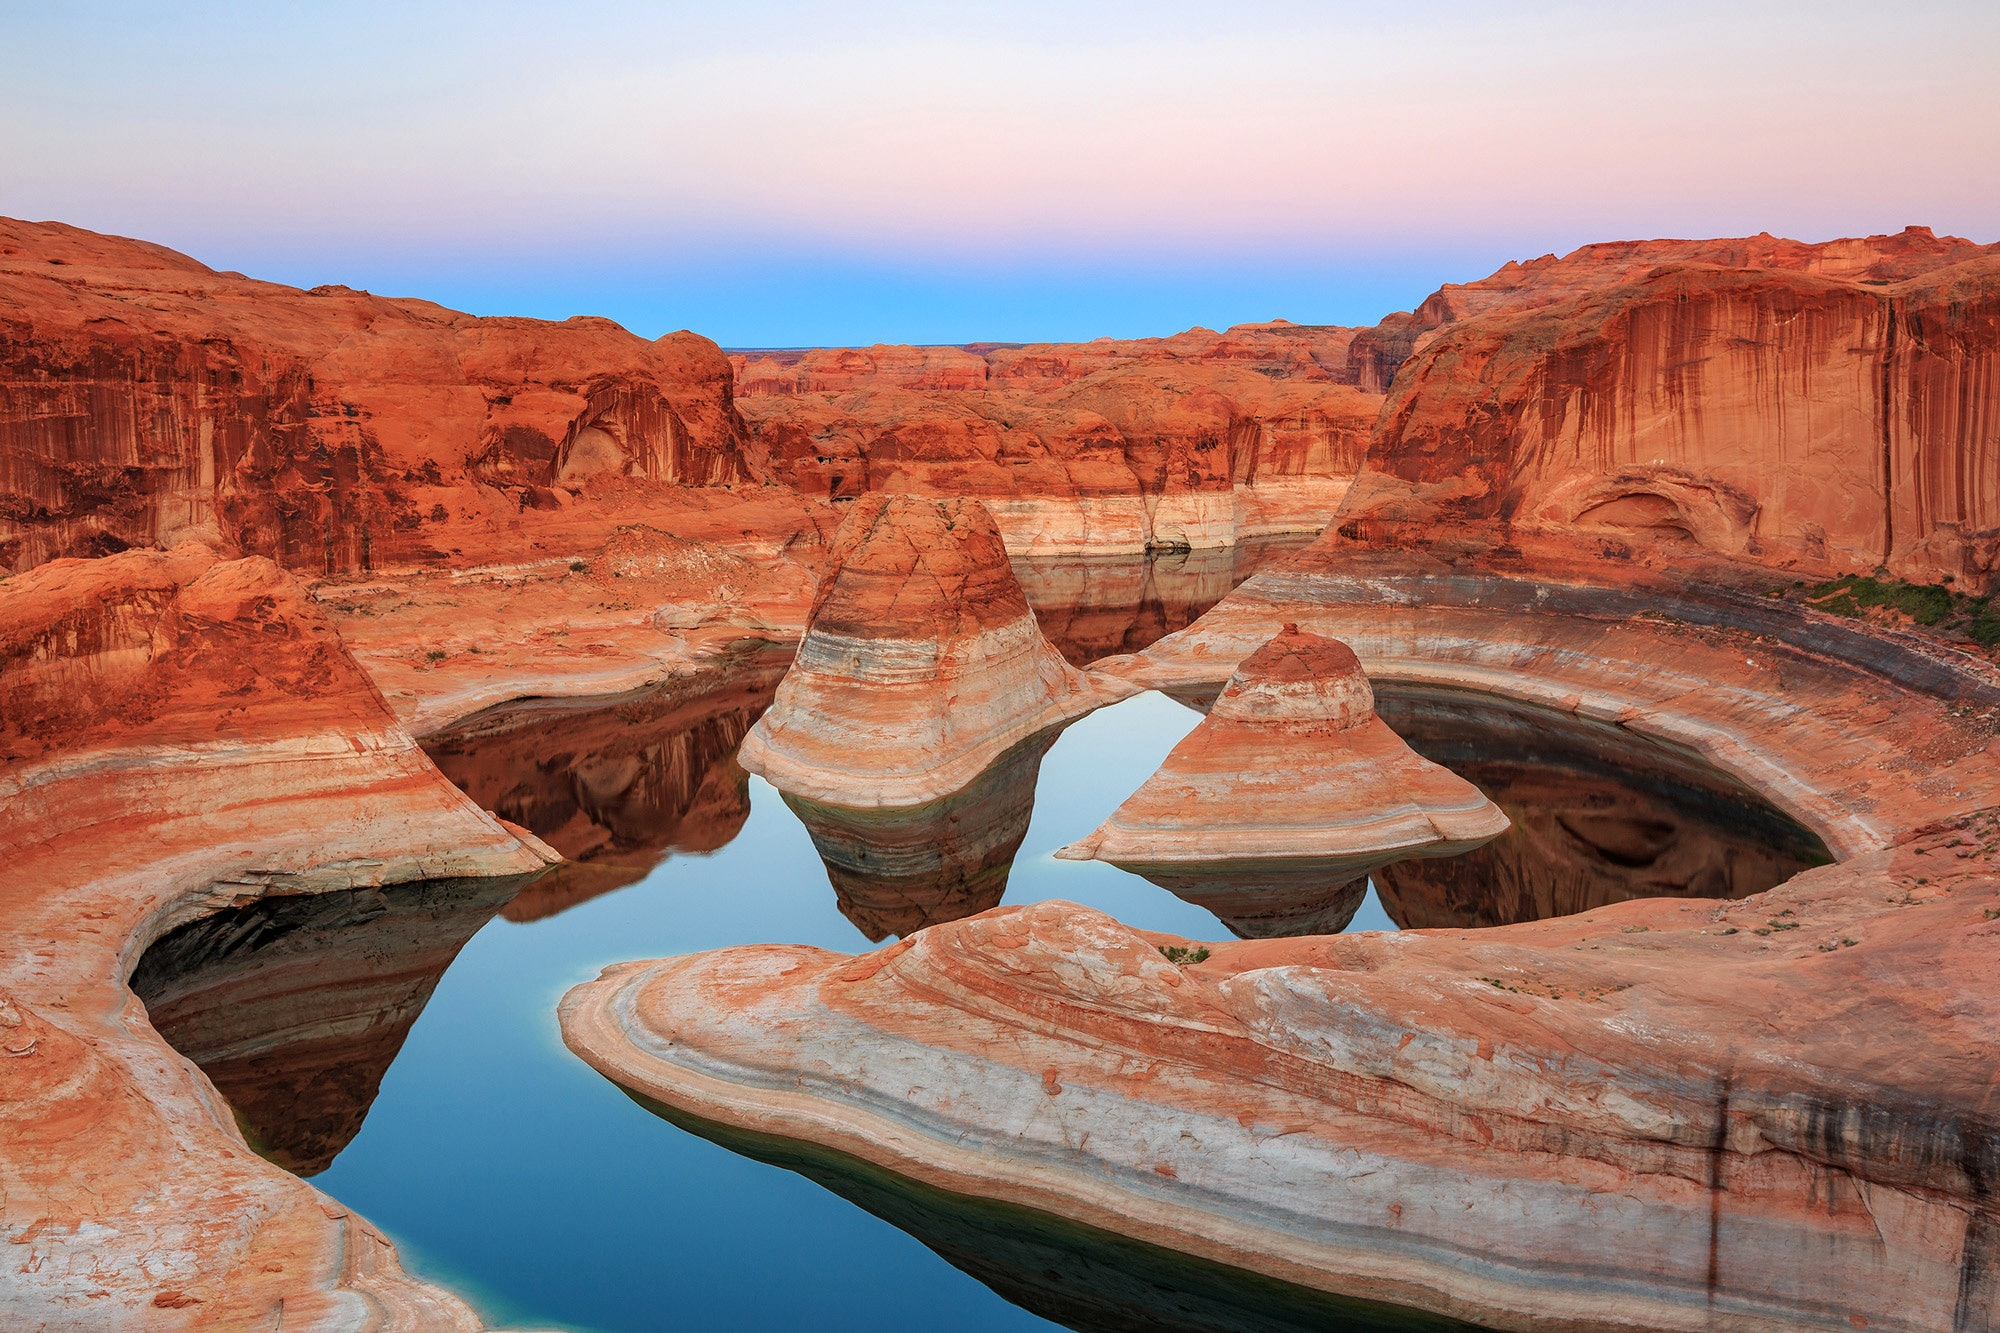 Reflection Canyon, one of the myriad geological wonders along the length of Lake Powell © Johnny Adolphson / Shutterstock